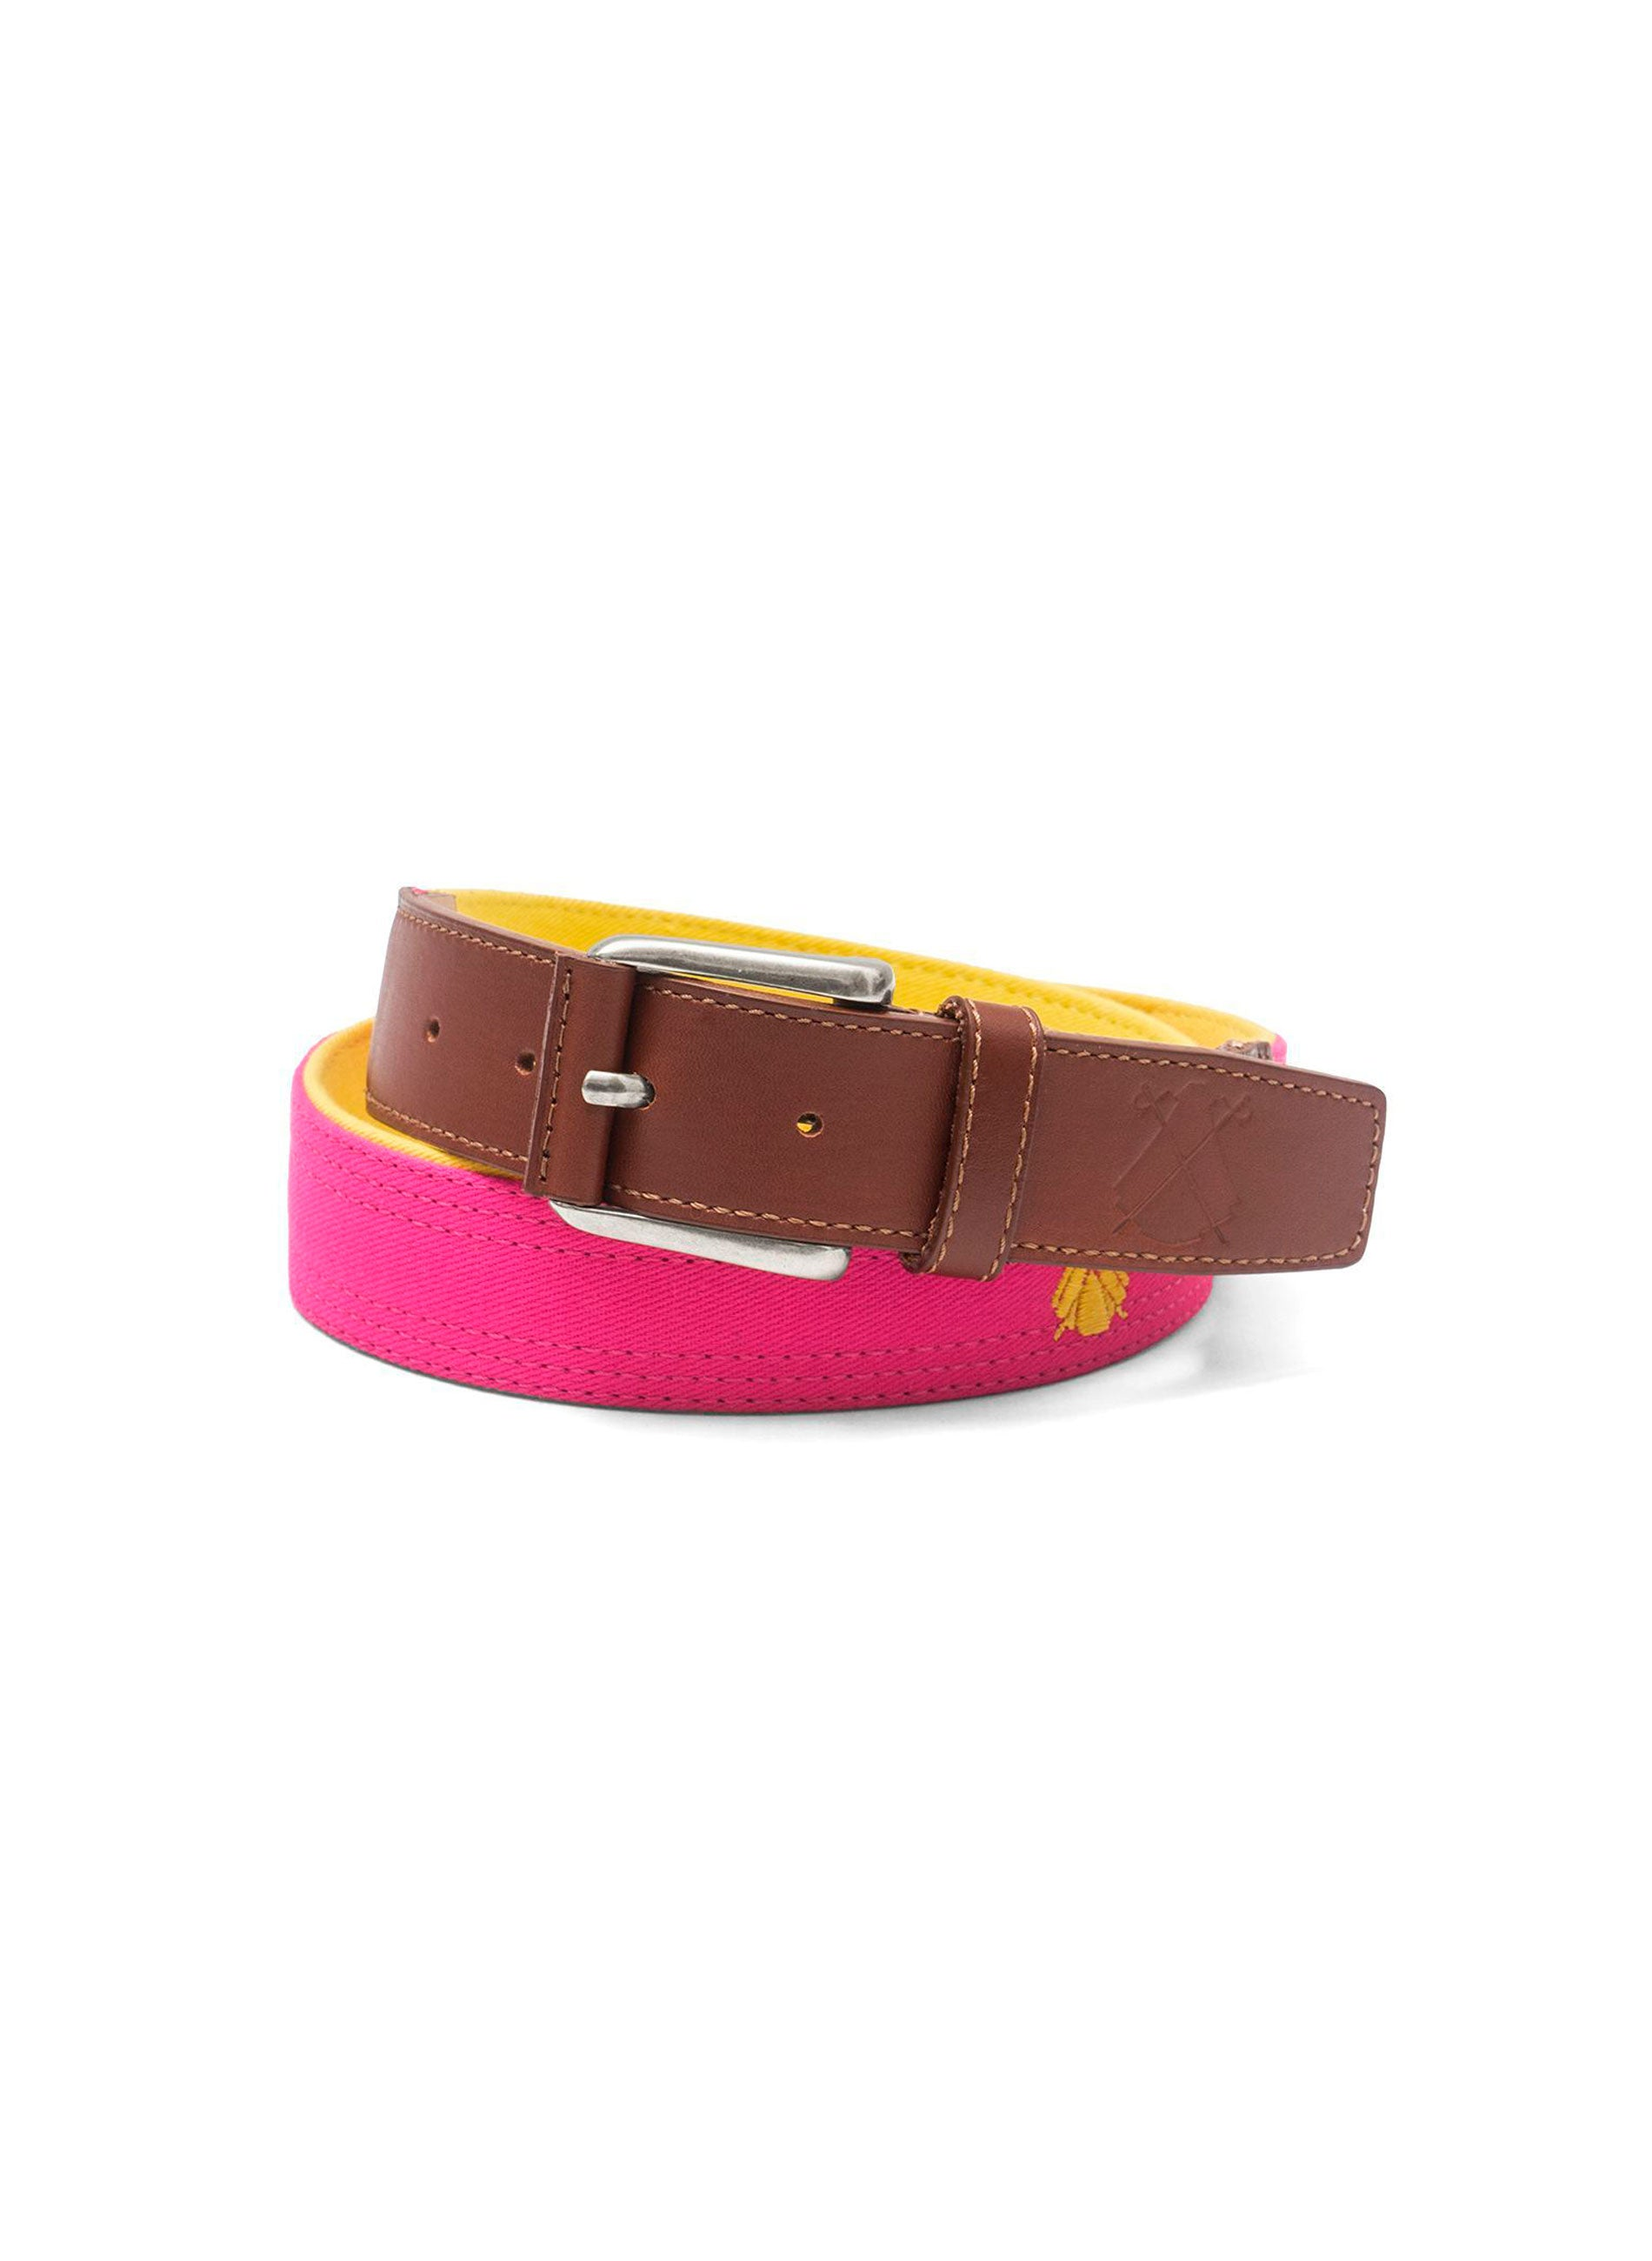 PINK BELT CAPOTE / YELLOW LOGOS